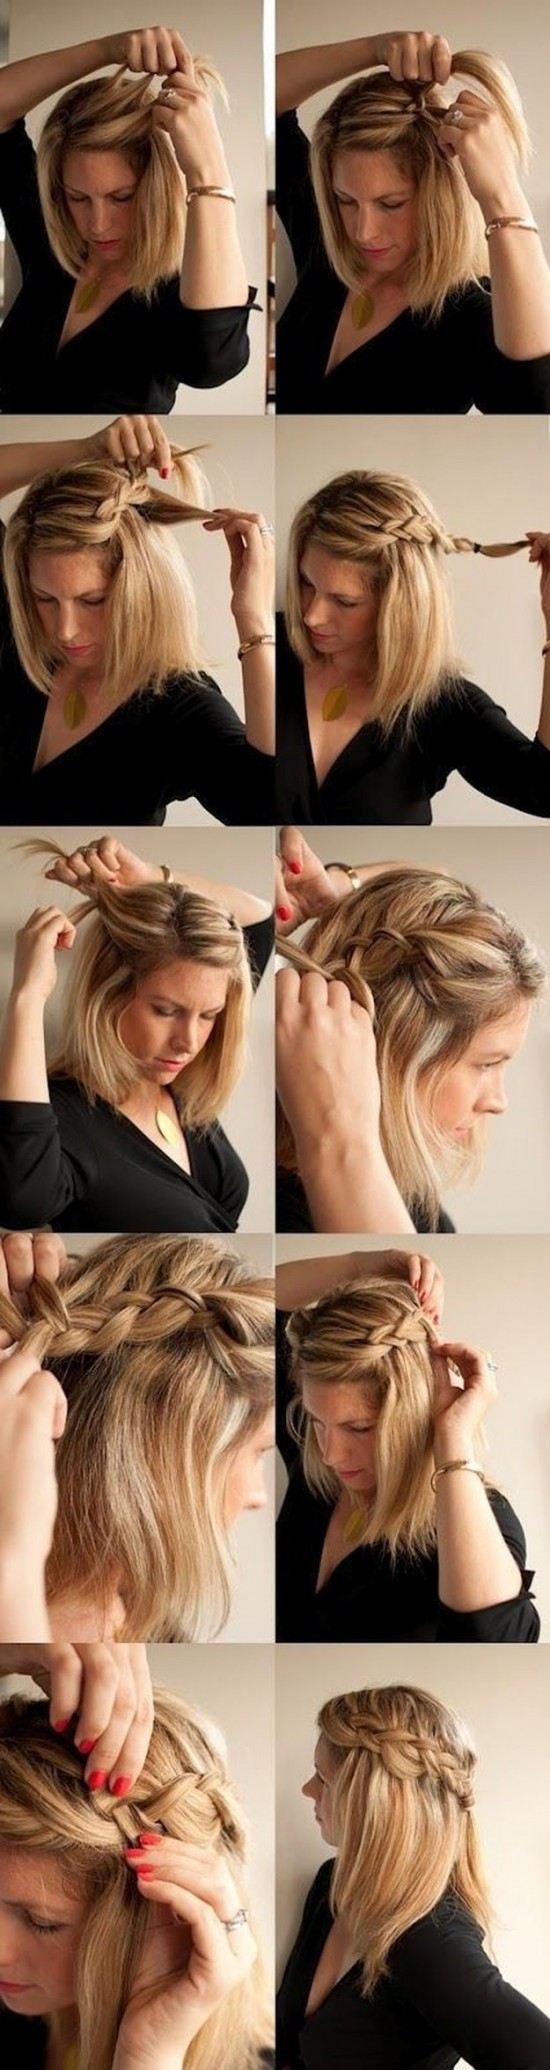 Hairstyles You Can Do : Creative Hairstyles That You Can Easily Do at Home (27 Photos ...